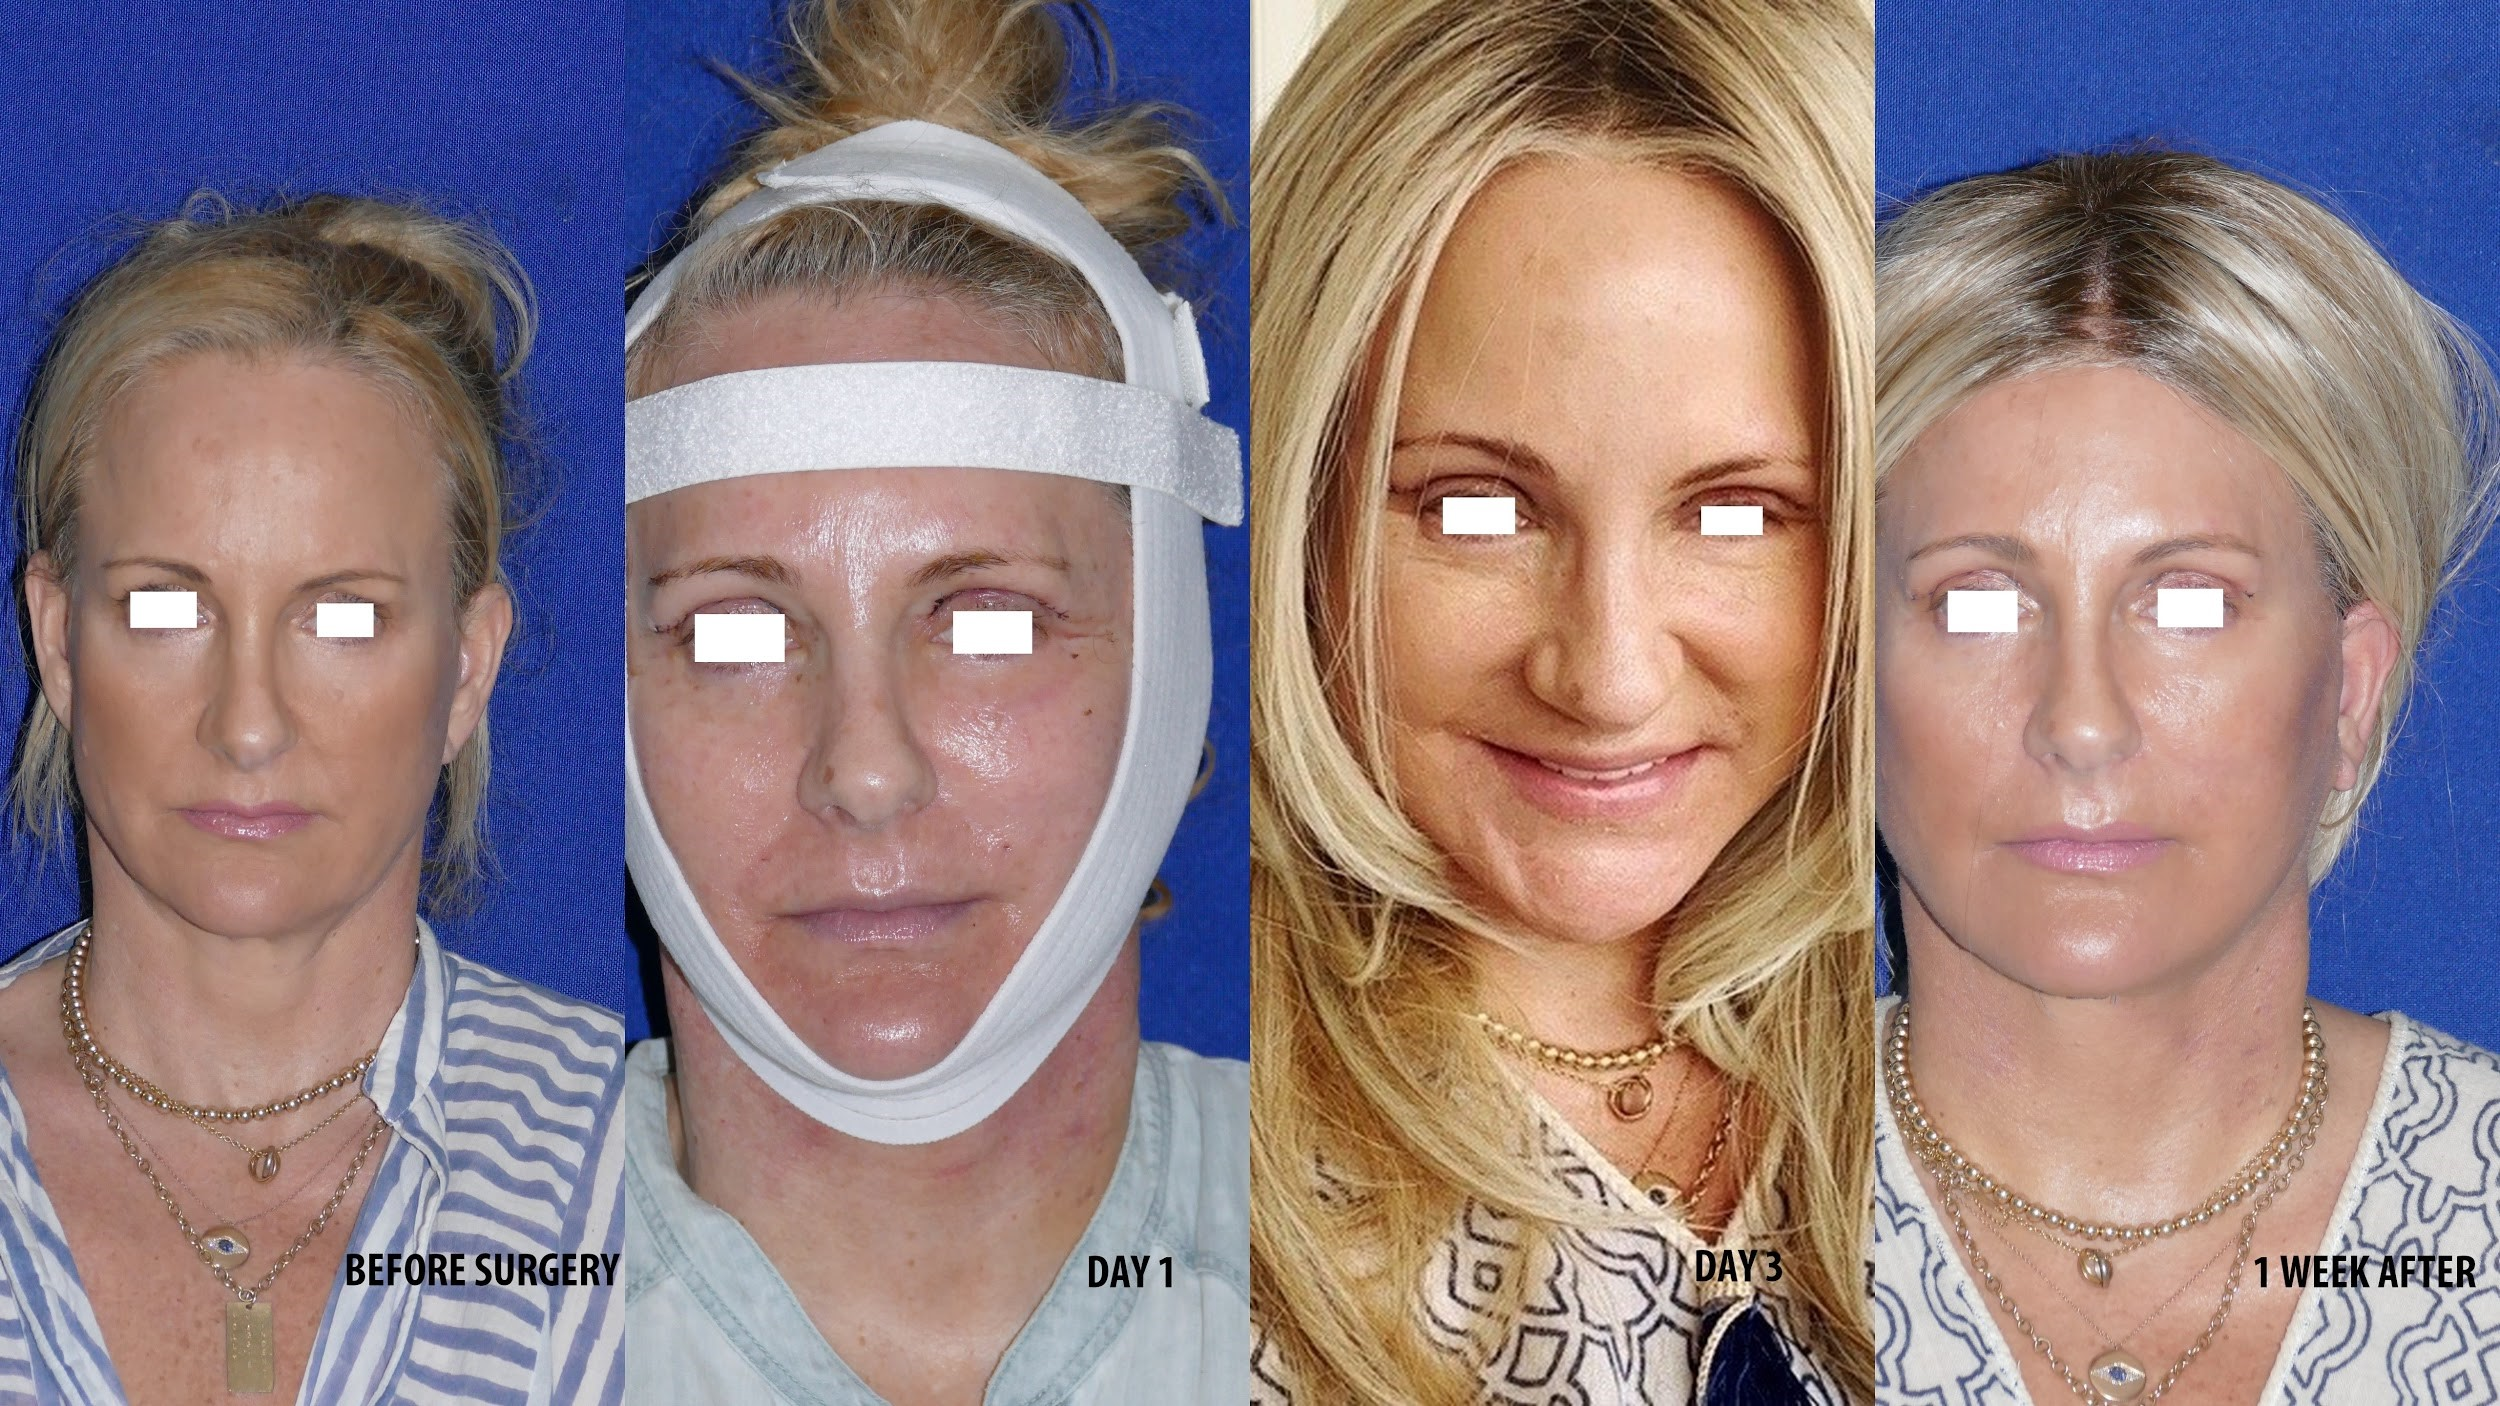 Natural Appearance Deep Plane Facelift Surgery with Little Bruising or Swelling